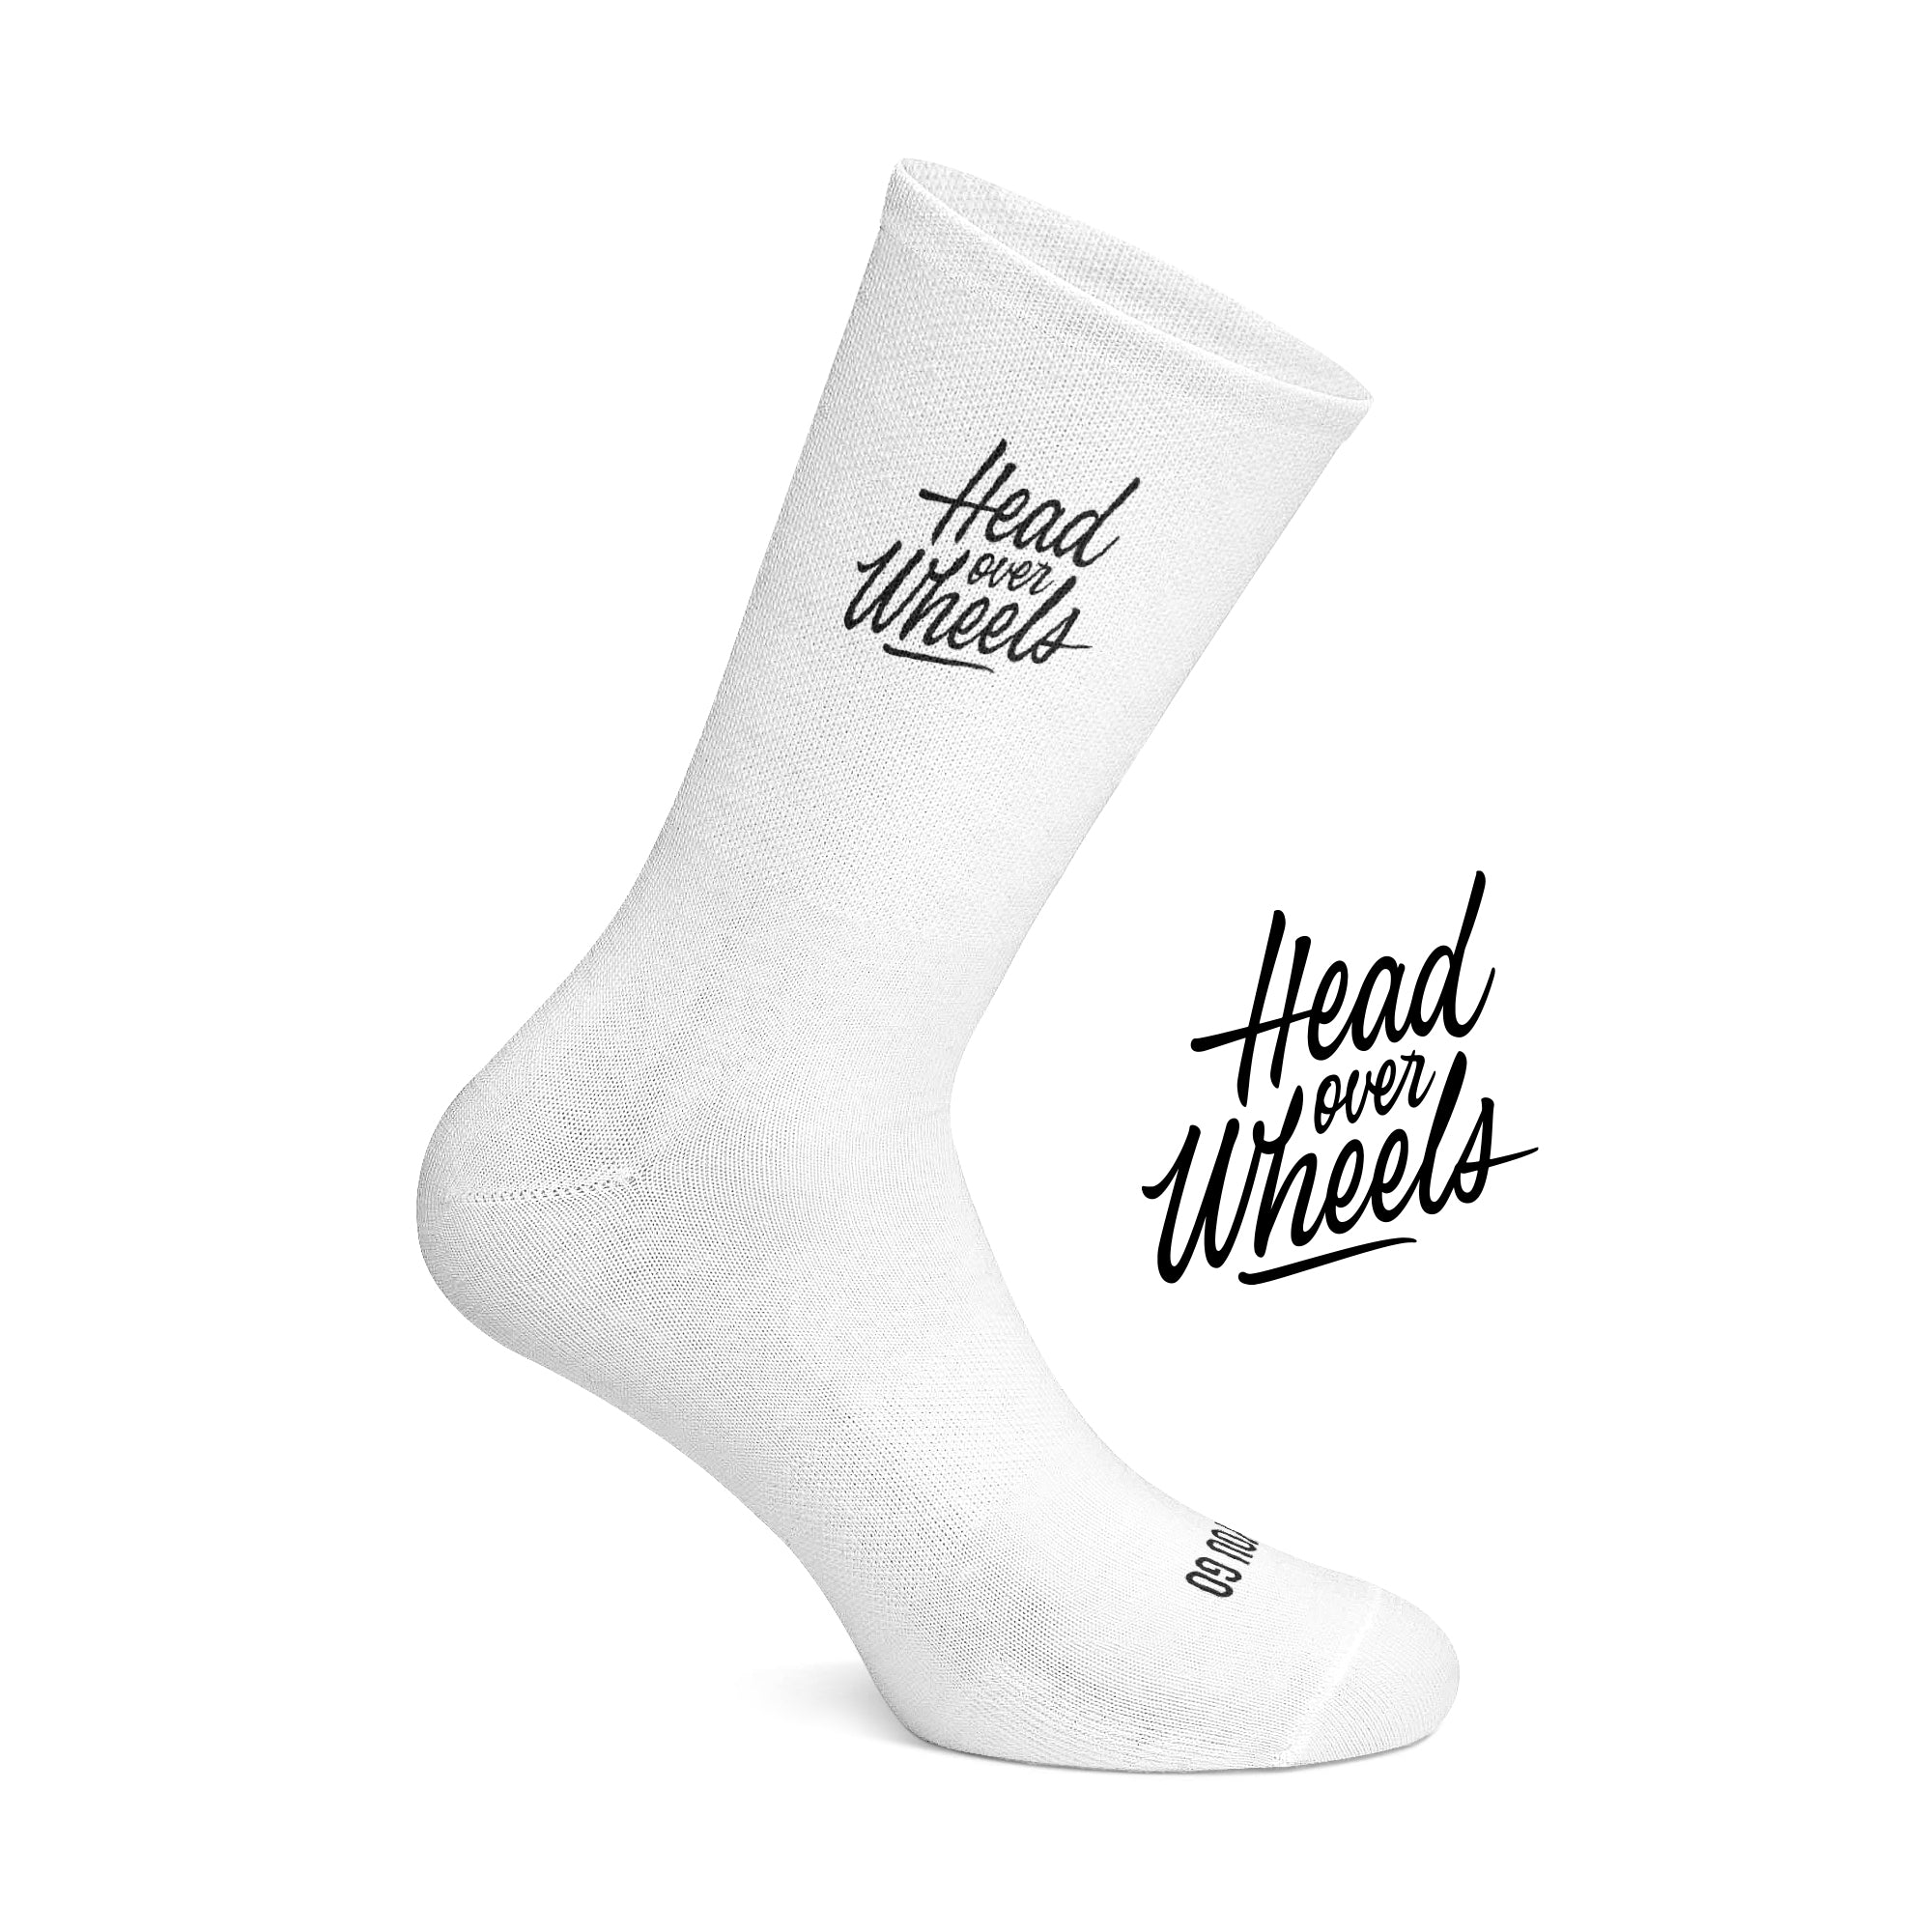 Head over Wheels cycling socks White